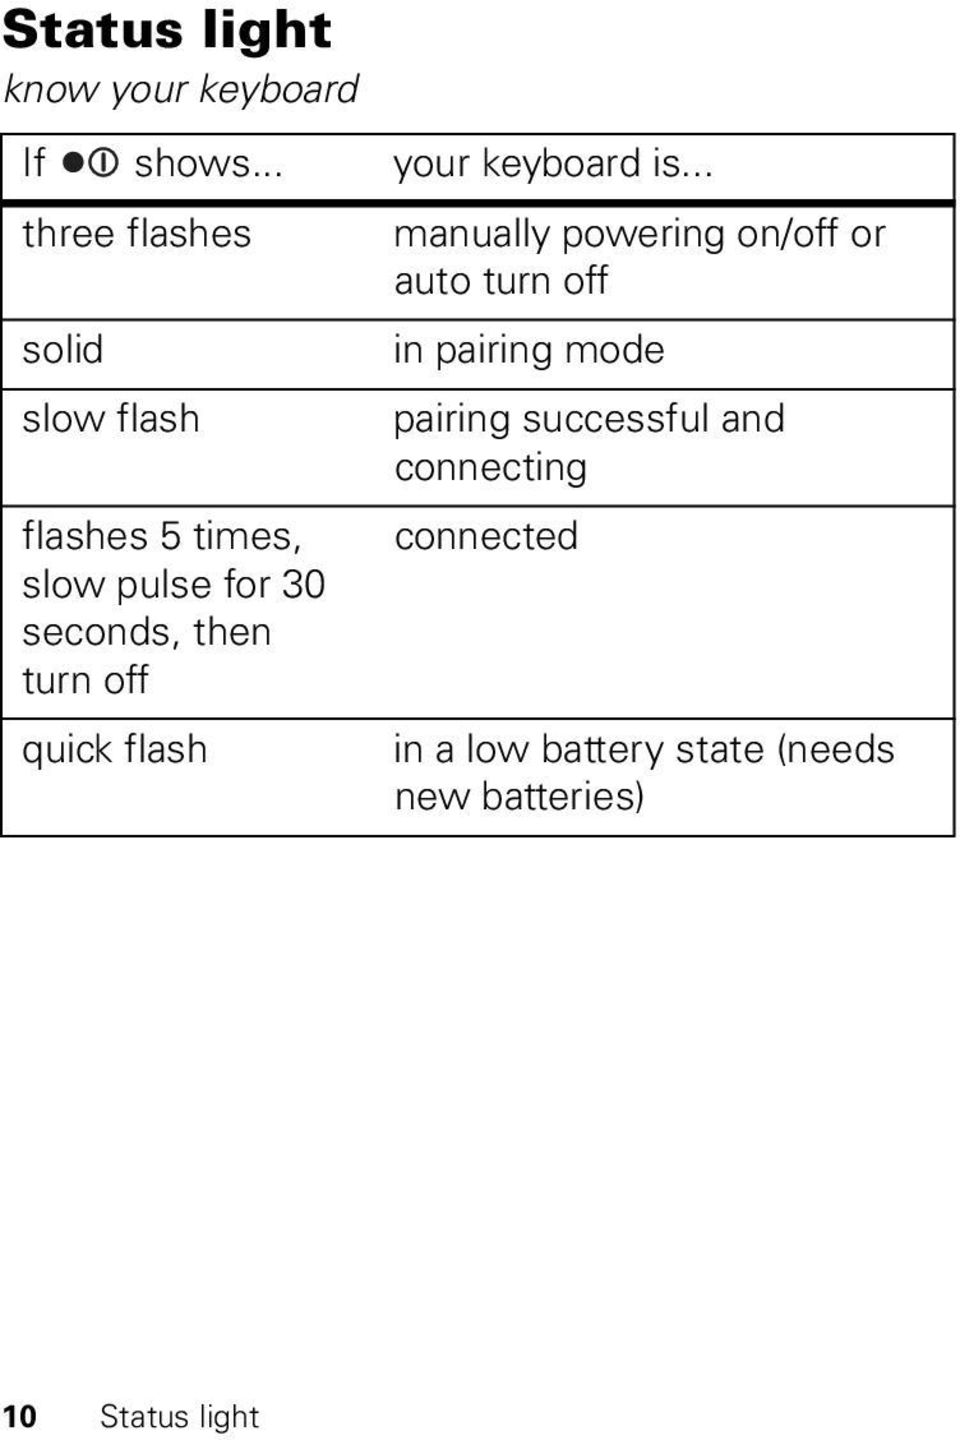 slow flash pairing successful and connecting flashes 5 times, connected slow